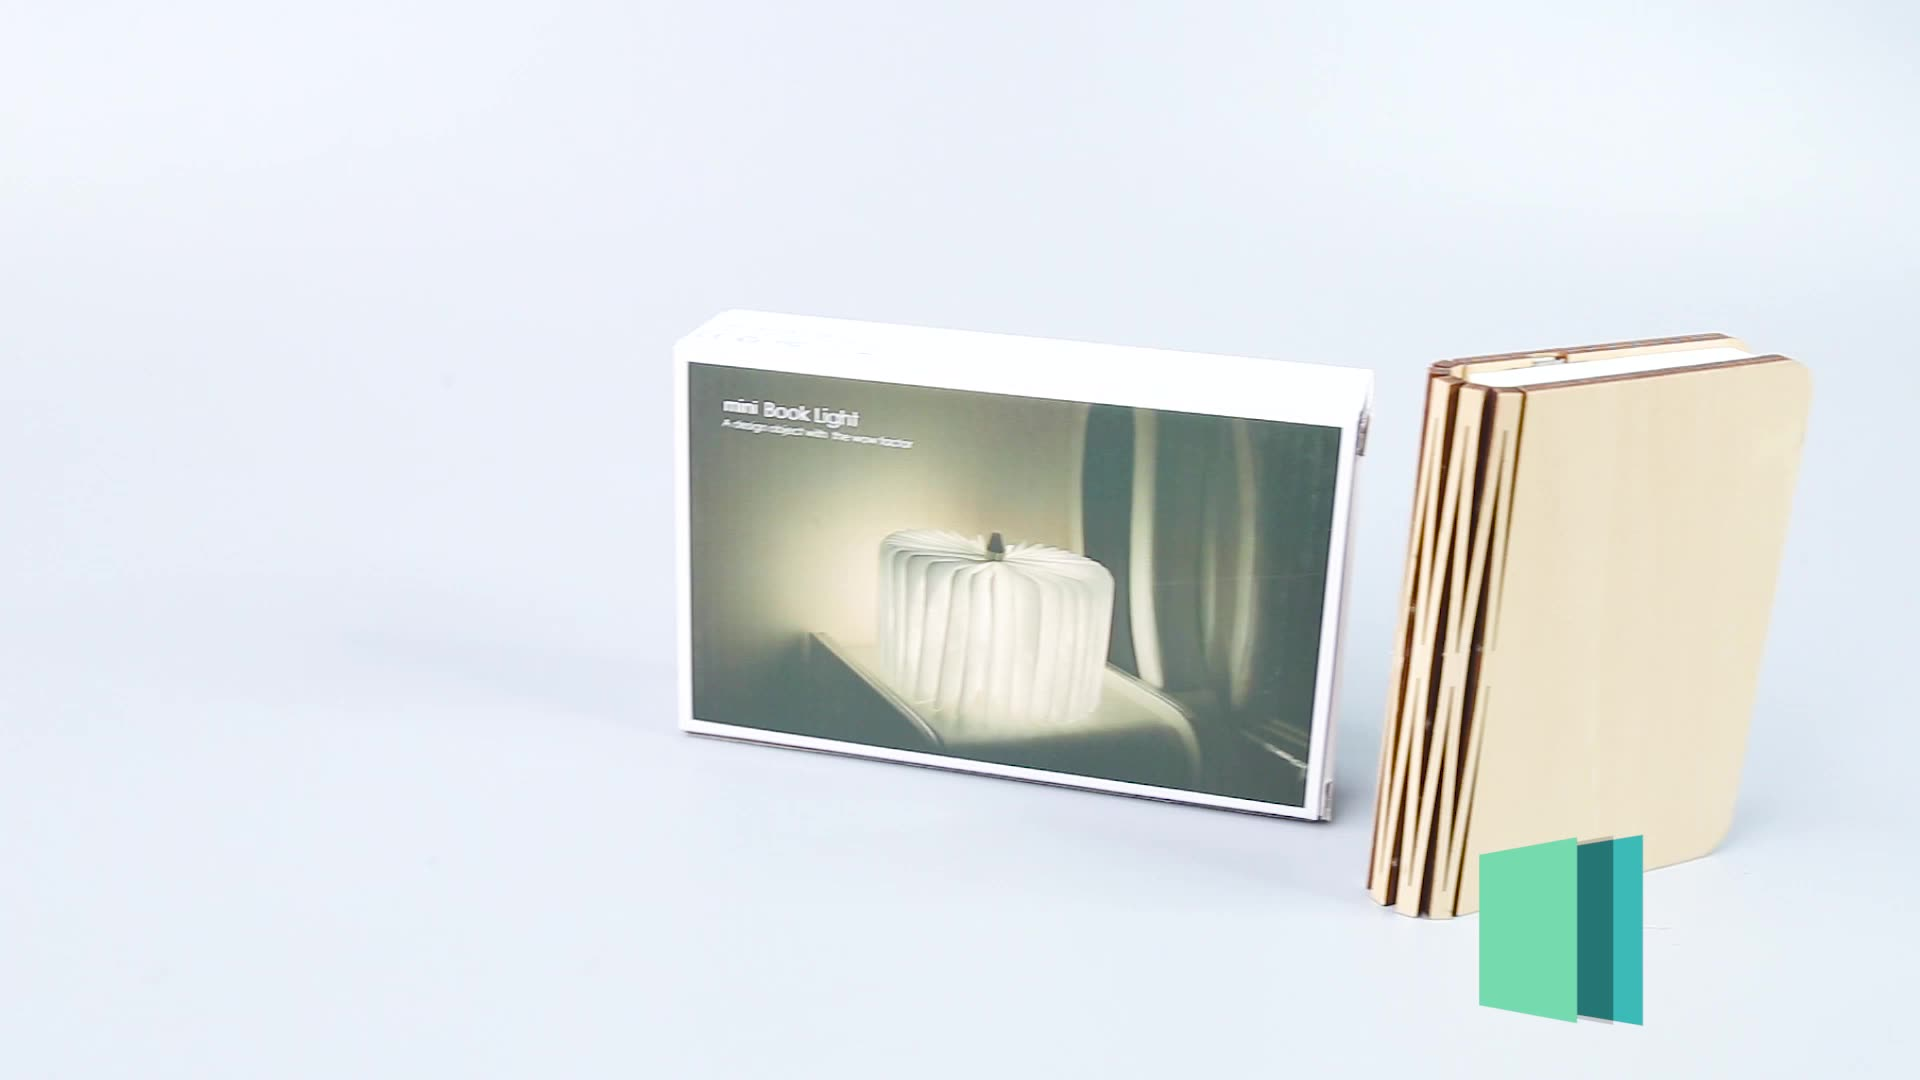 2020 Trending products tyvek paper folding led book lamp with wooden cover